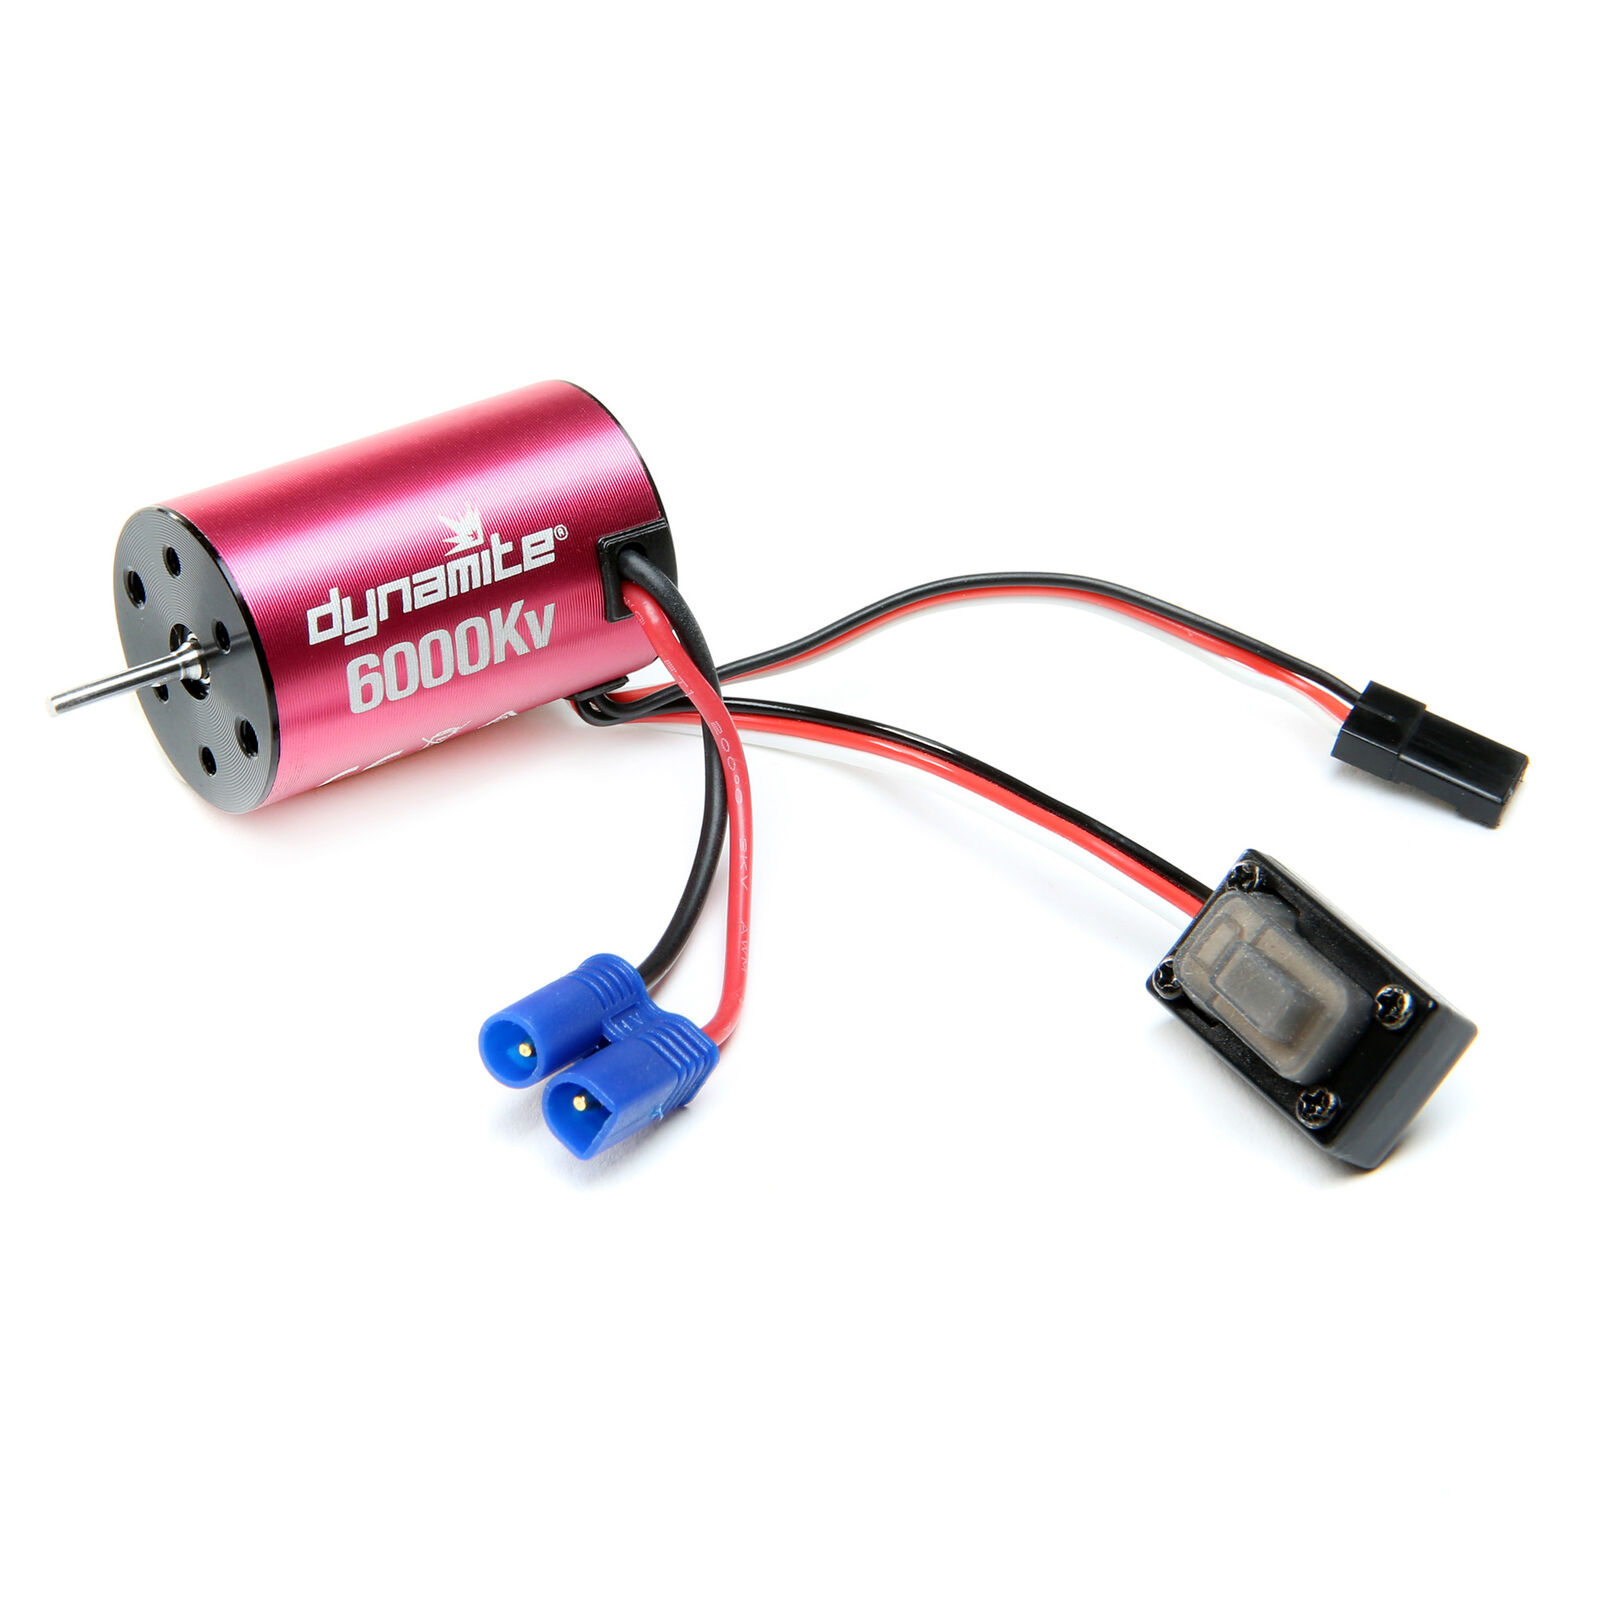 Brushless Motor/ESC 2-in-1 Combo, 6000Kv: Mini-T 2.0